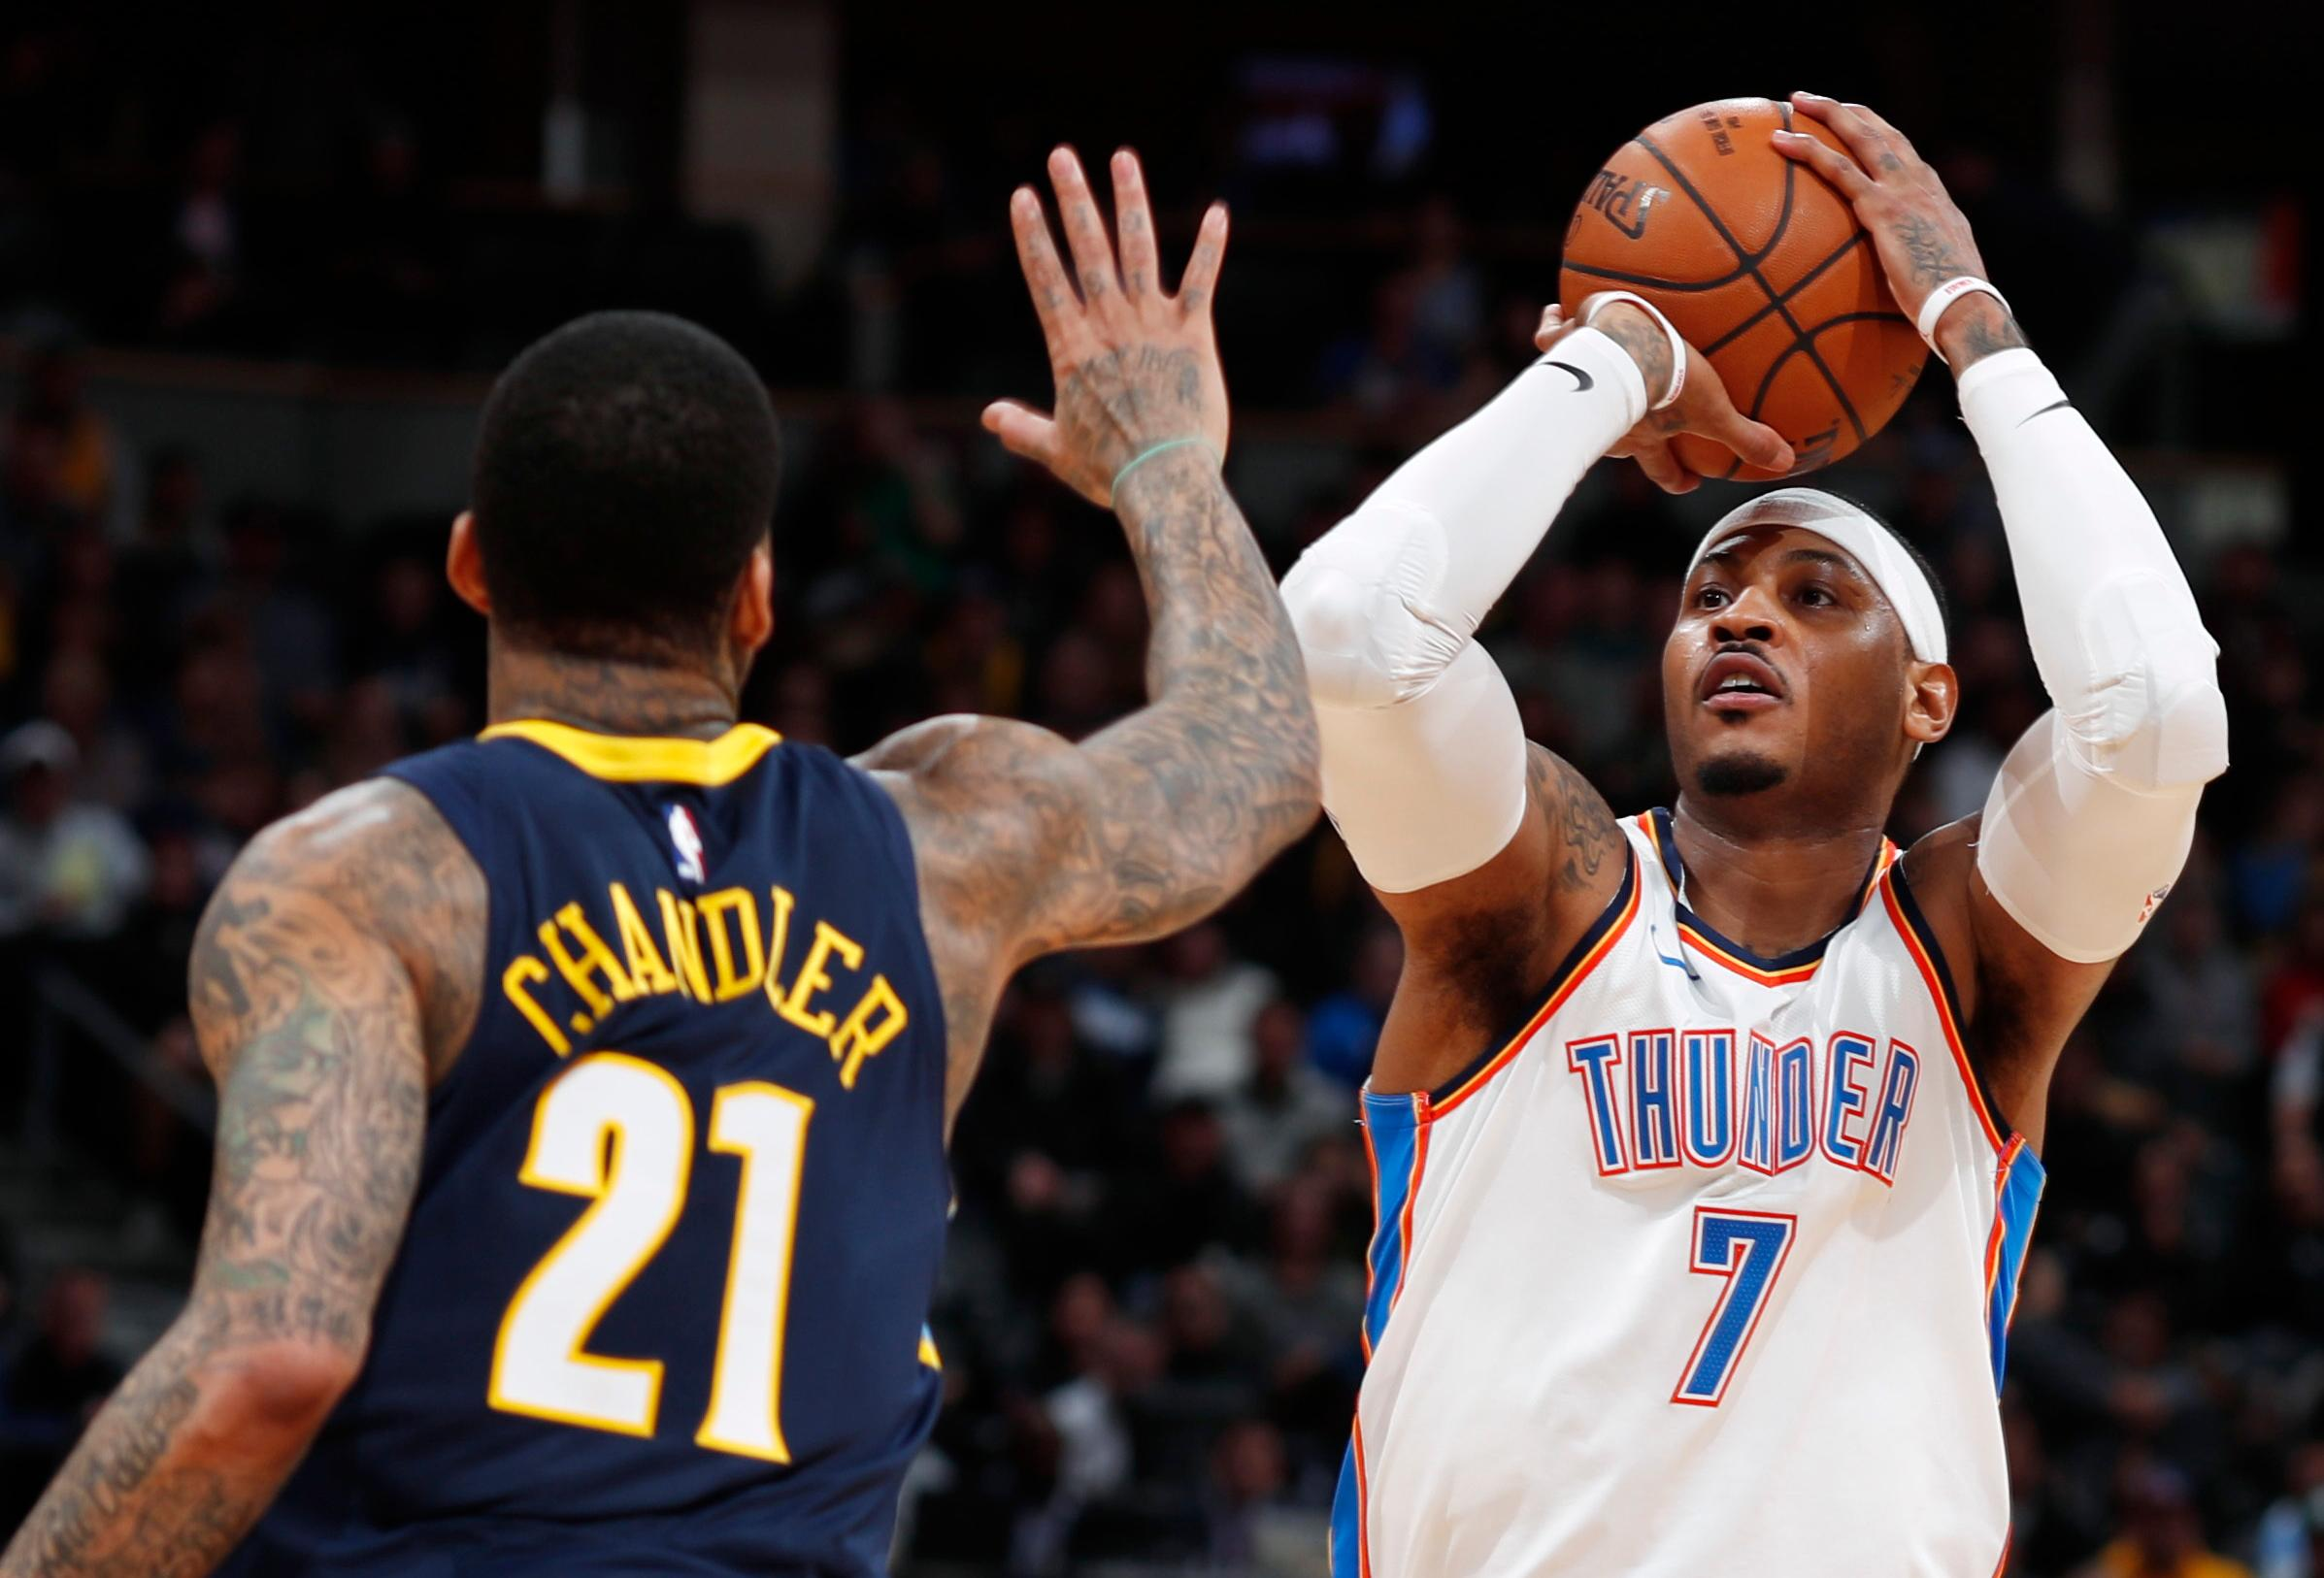 Oklahoma City Thunder forward Carmelo Anthony shoots as Denver Nuggets forward Wilson Chandler defends during the first half of an NBA basketball game Thursday, Feb. 1, 2018, in Denver. (AP Photo/David Zalubowski)